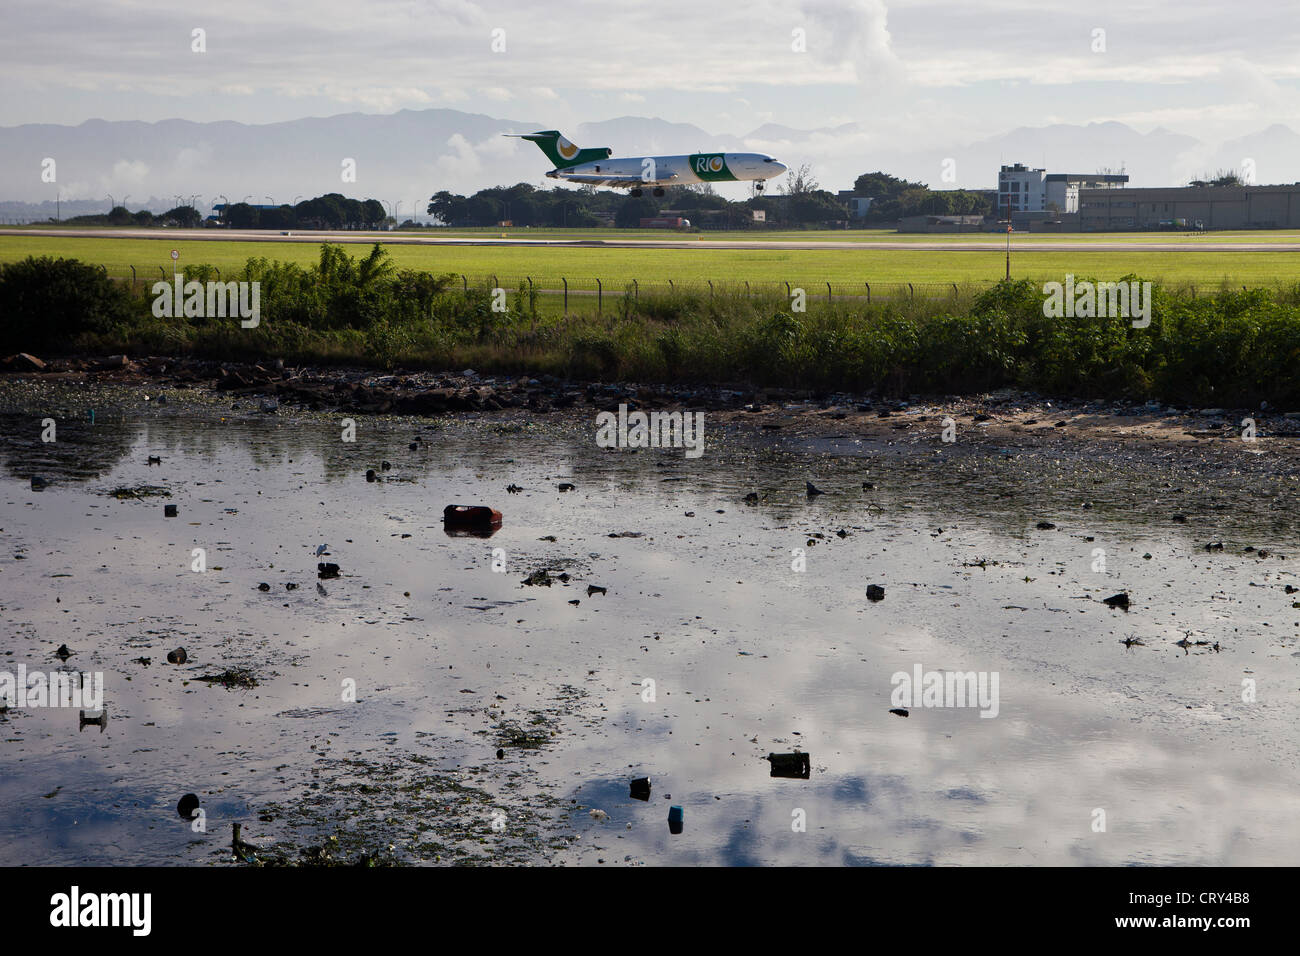 Garbage and fetid mud beside Rio de Janeiro International airport located in the shore of Guanabara Bay, Brazil. - Stock Image